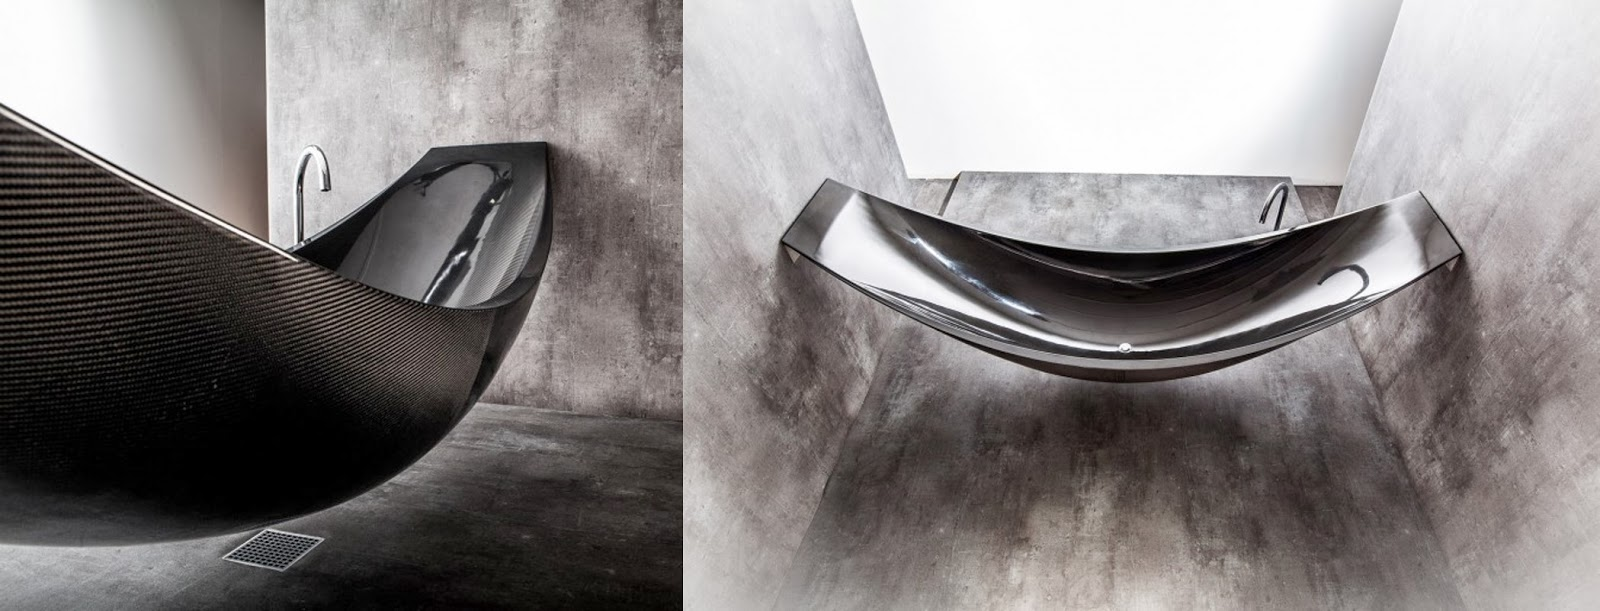 Vessel Hammock Bathtub By Splinter Design In Living Spaces - Hammock shaped bath tub